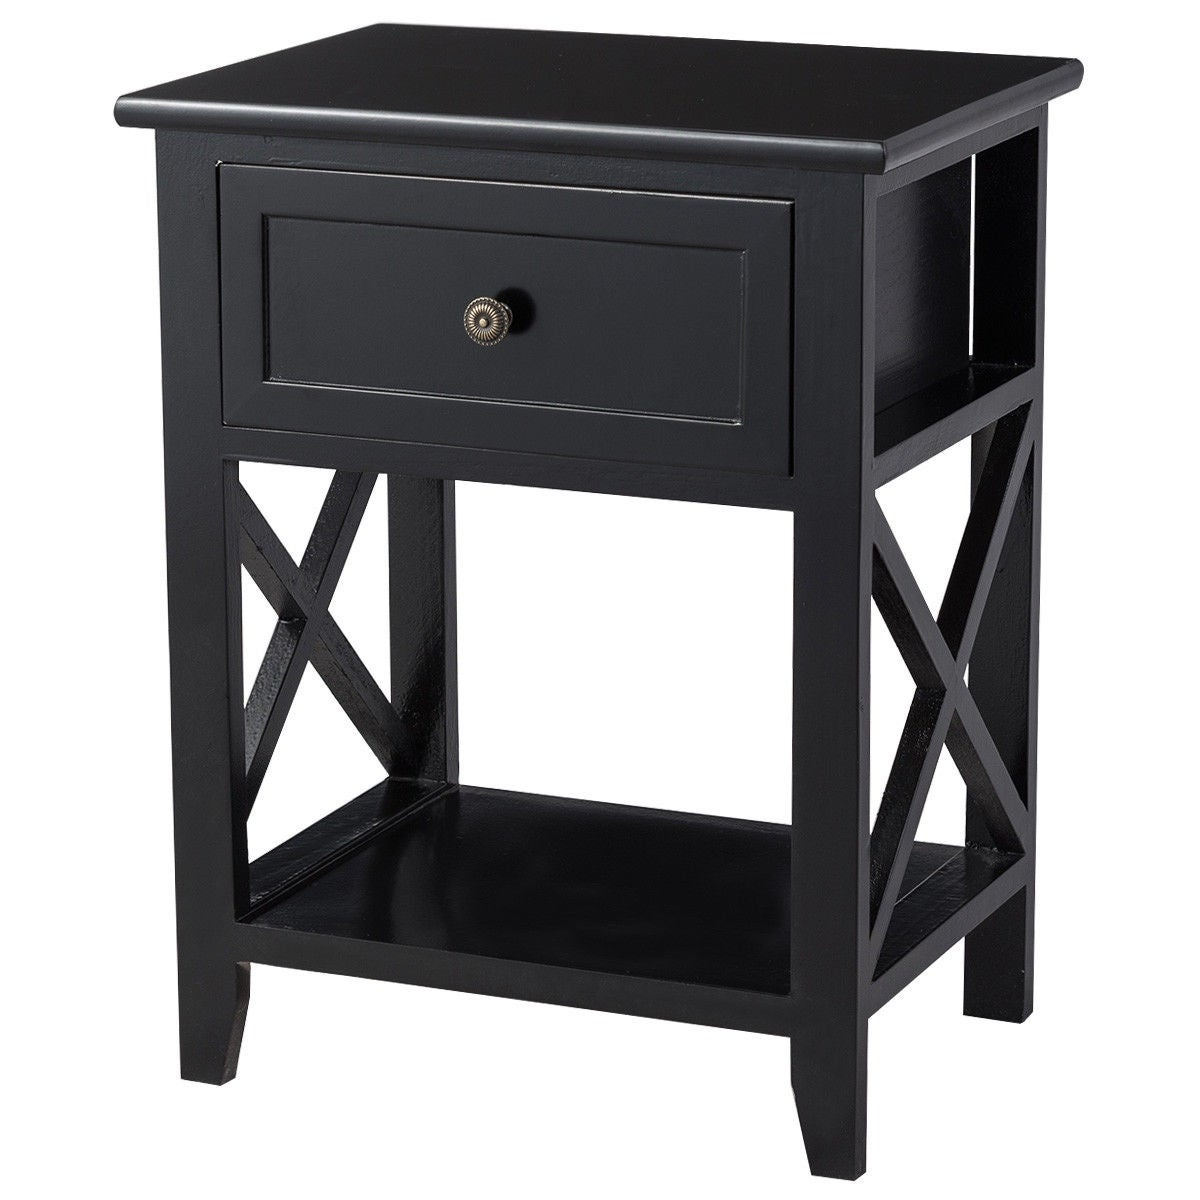 Costway End Bedside Table Nightstand Drawer Storage Room Decor W Bottom Shelf Black Free Shipping Today 22437225